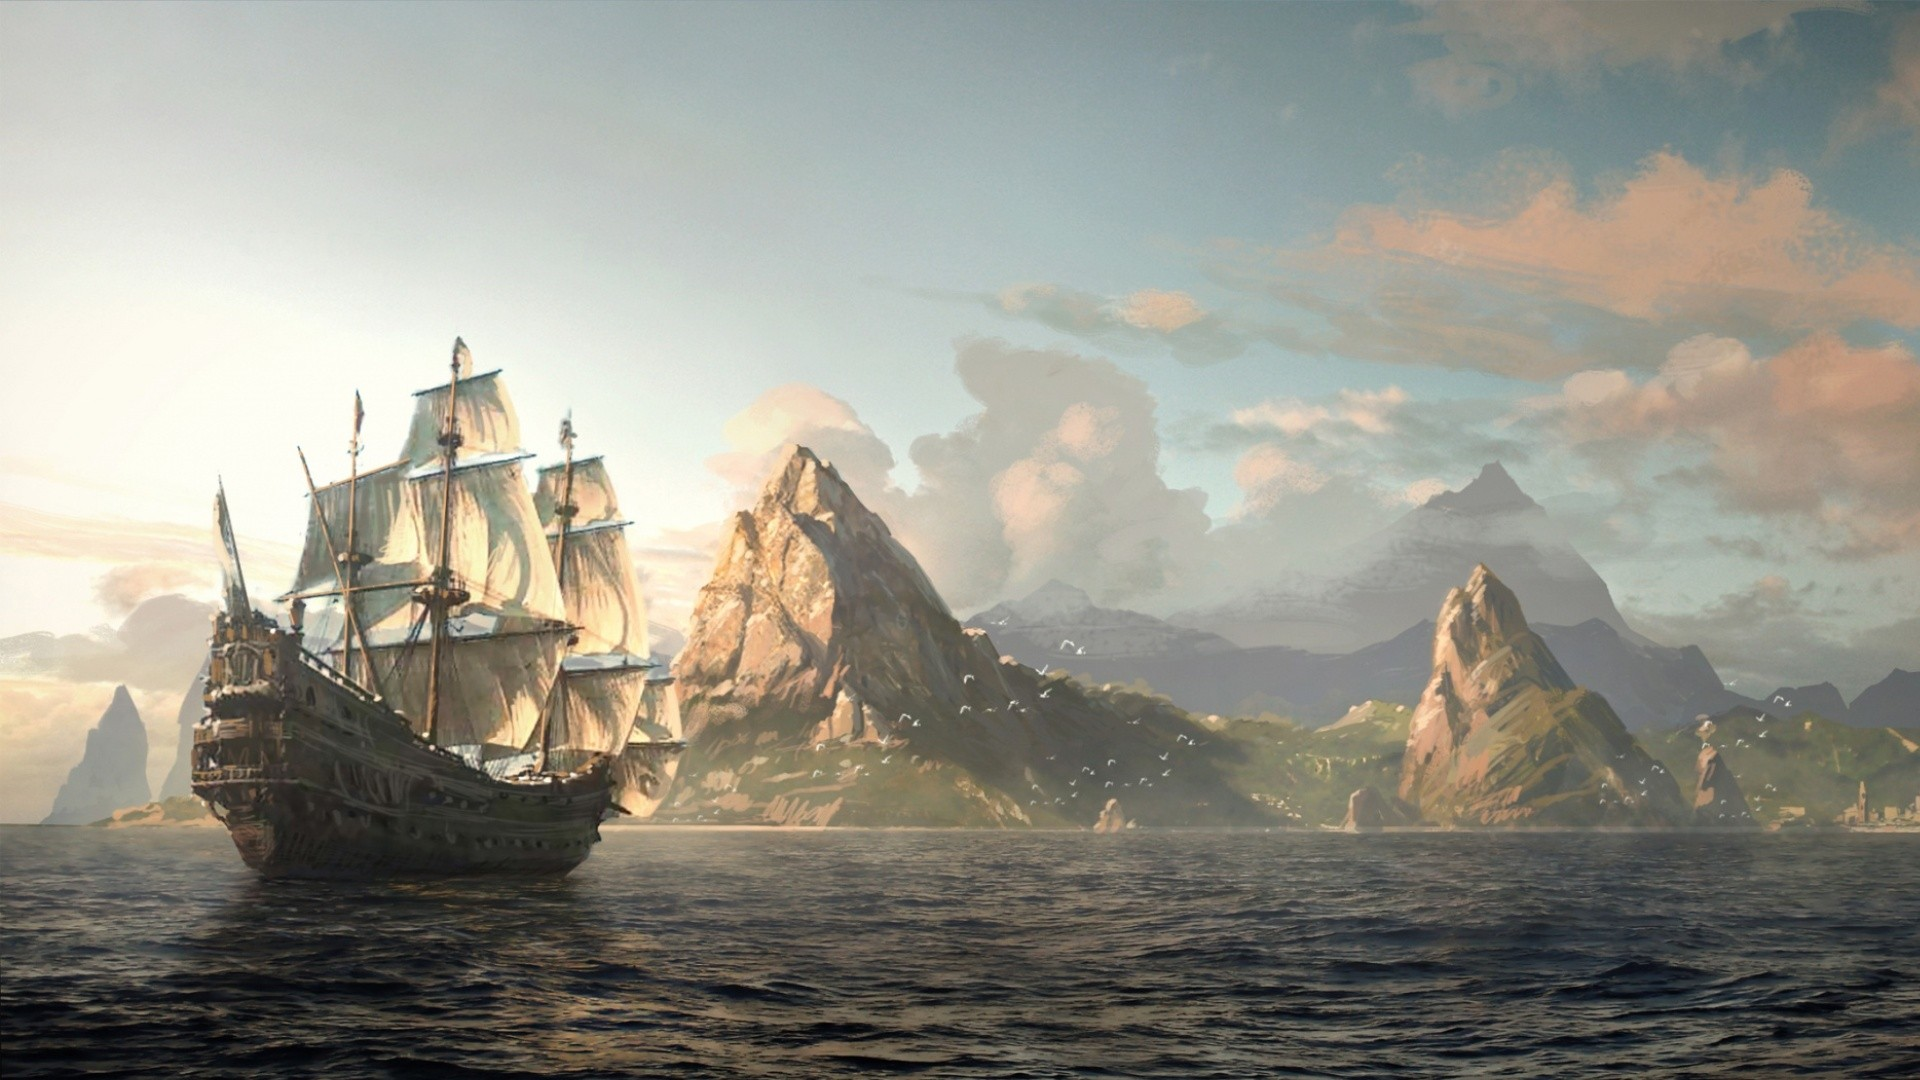 creed iii wallpaper - photo #13